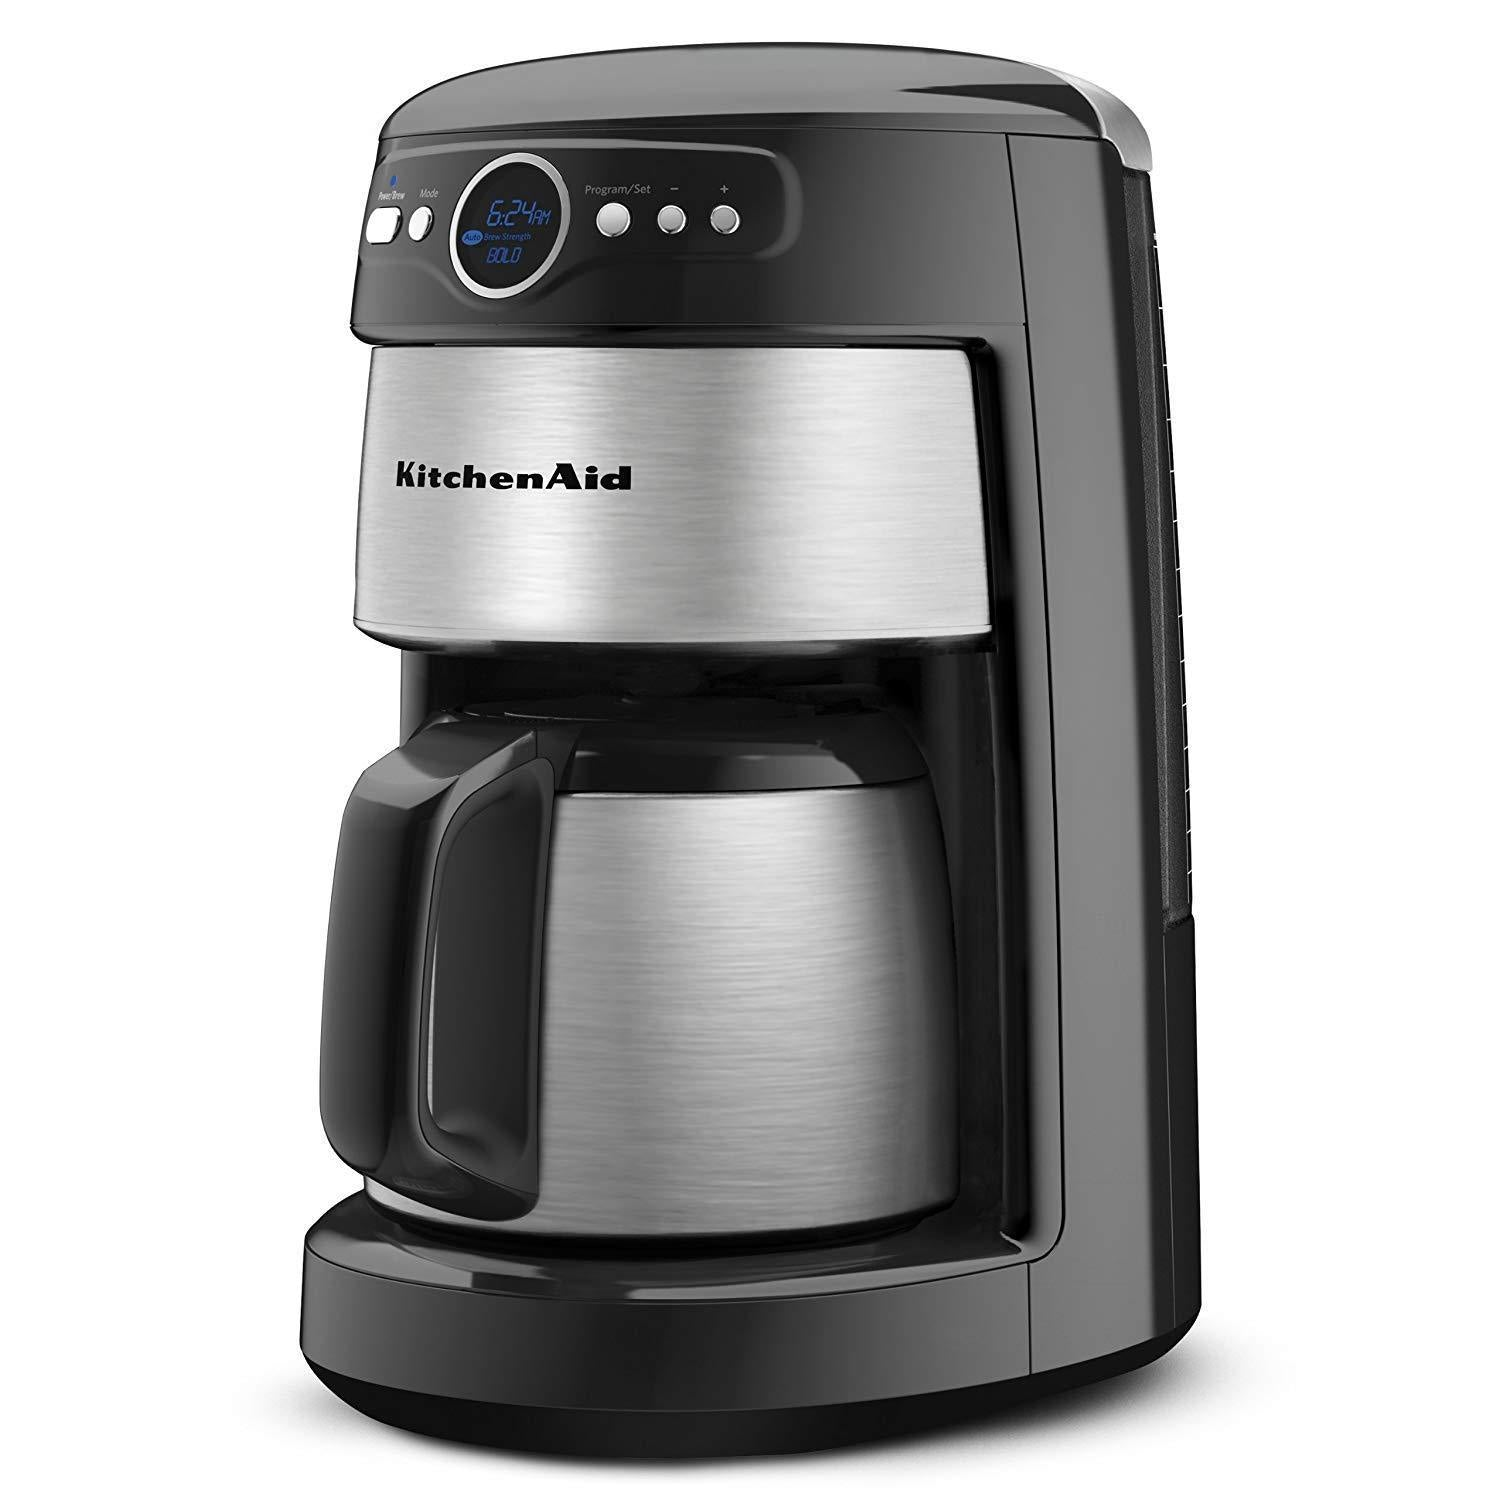 KitchenAid 12-Cup Thermal Carafe Coffee Maker, Countour Silver